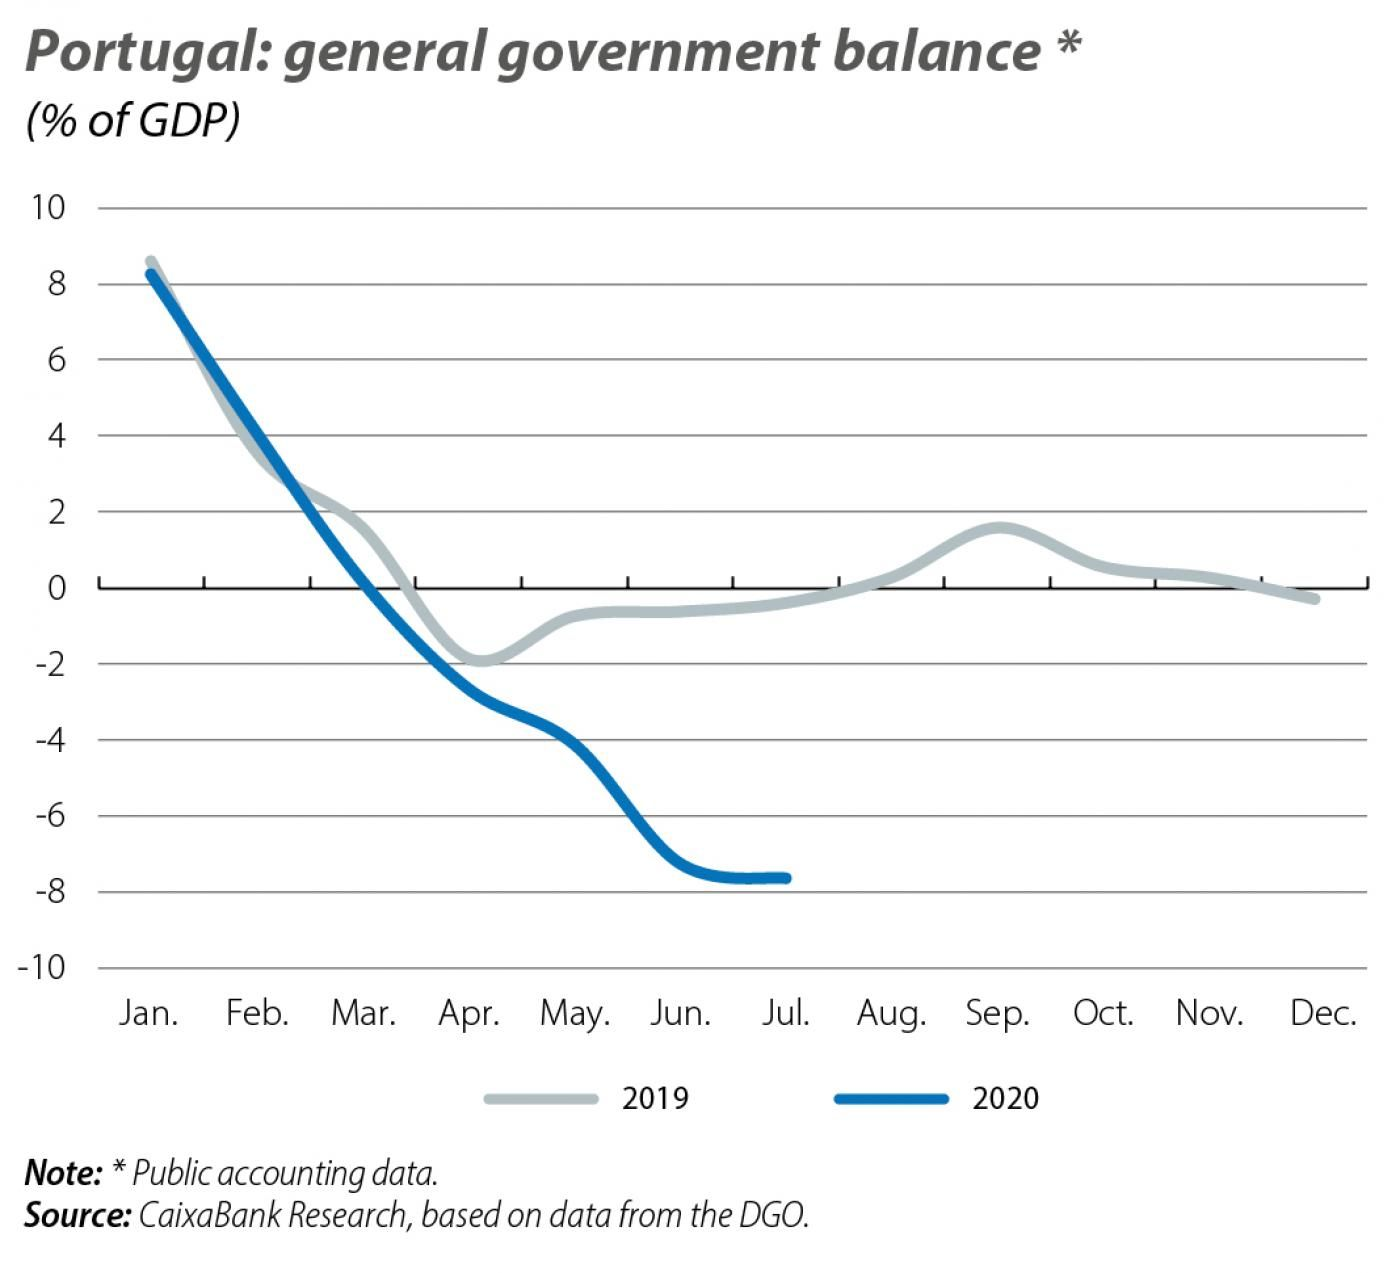 Portugal: general government balance